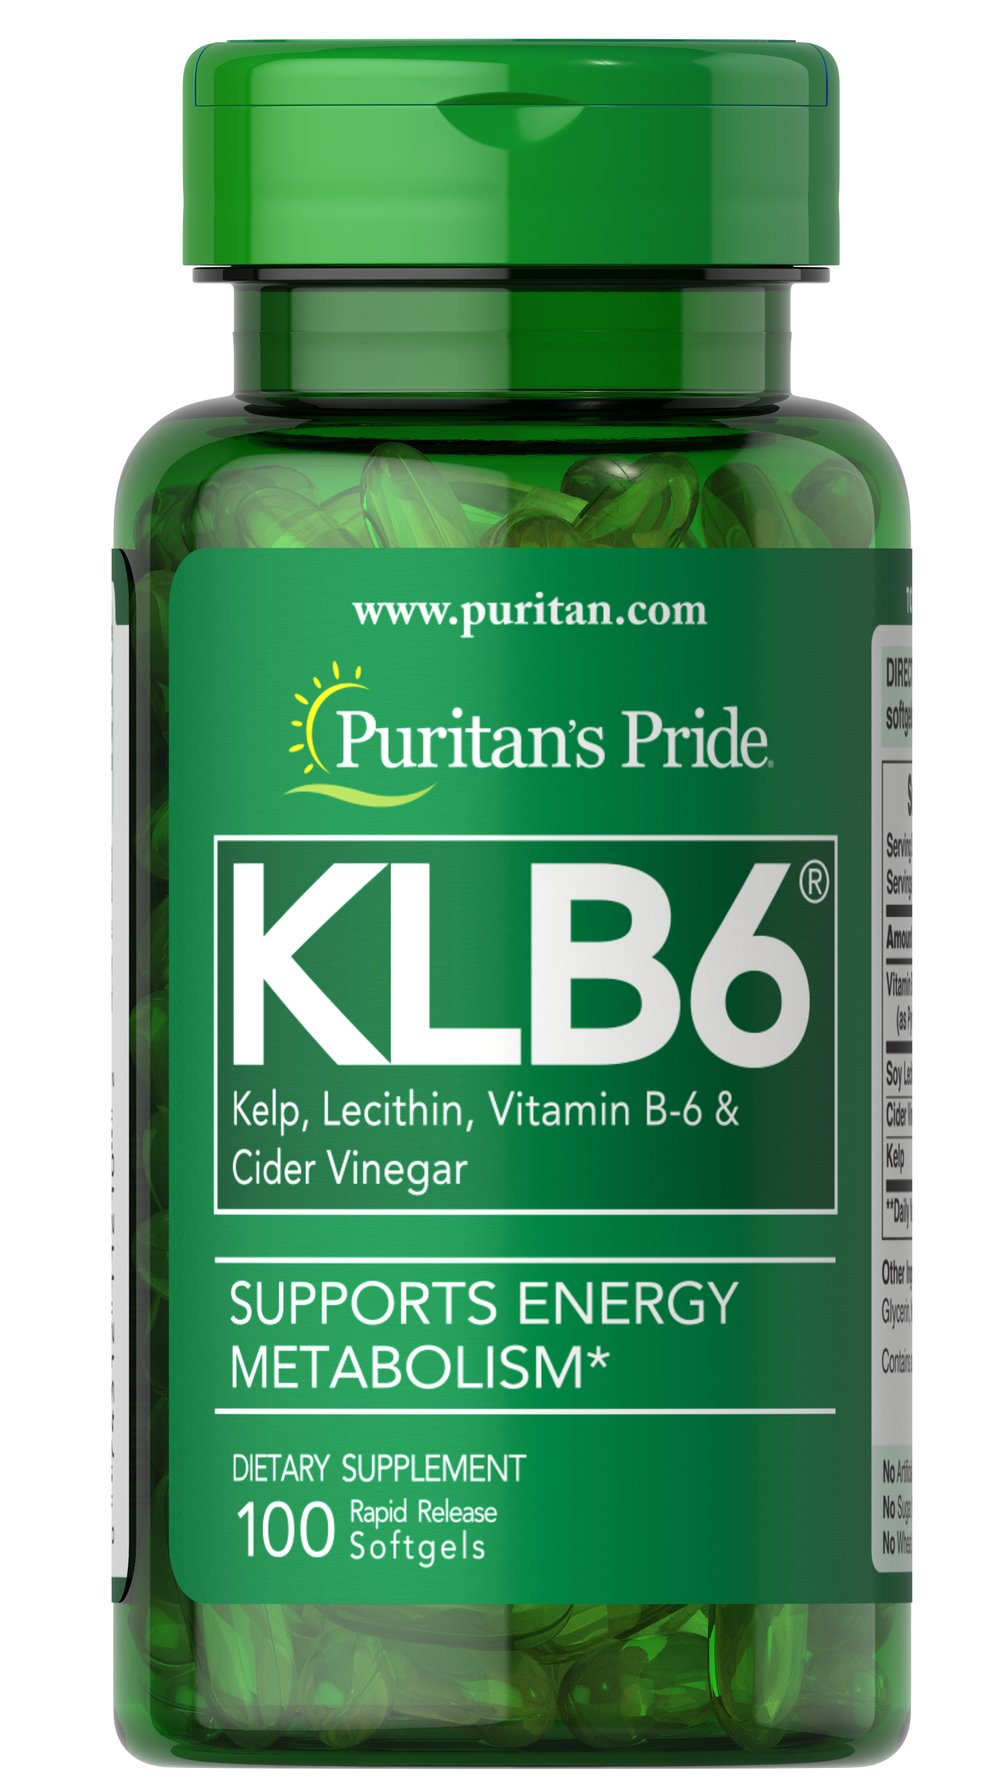 Natural KLB6® <p>Kelp, Lecithin,  Vitamin B-6 and Cider Vinegar,  all-in-one softgel.  Kelp works to maintain a healthy thyroid; Lecithin is an excellent natural source of choline and inositol; B-6 functions as a coenzyme involved in protein and fat metabolism; and Cider Vinegar is a natural and rich source of potassium and other associated minerals.**</p> 100 Softgels  $10.29